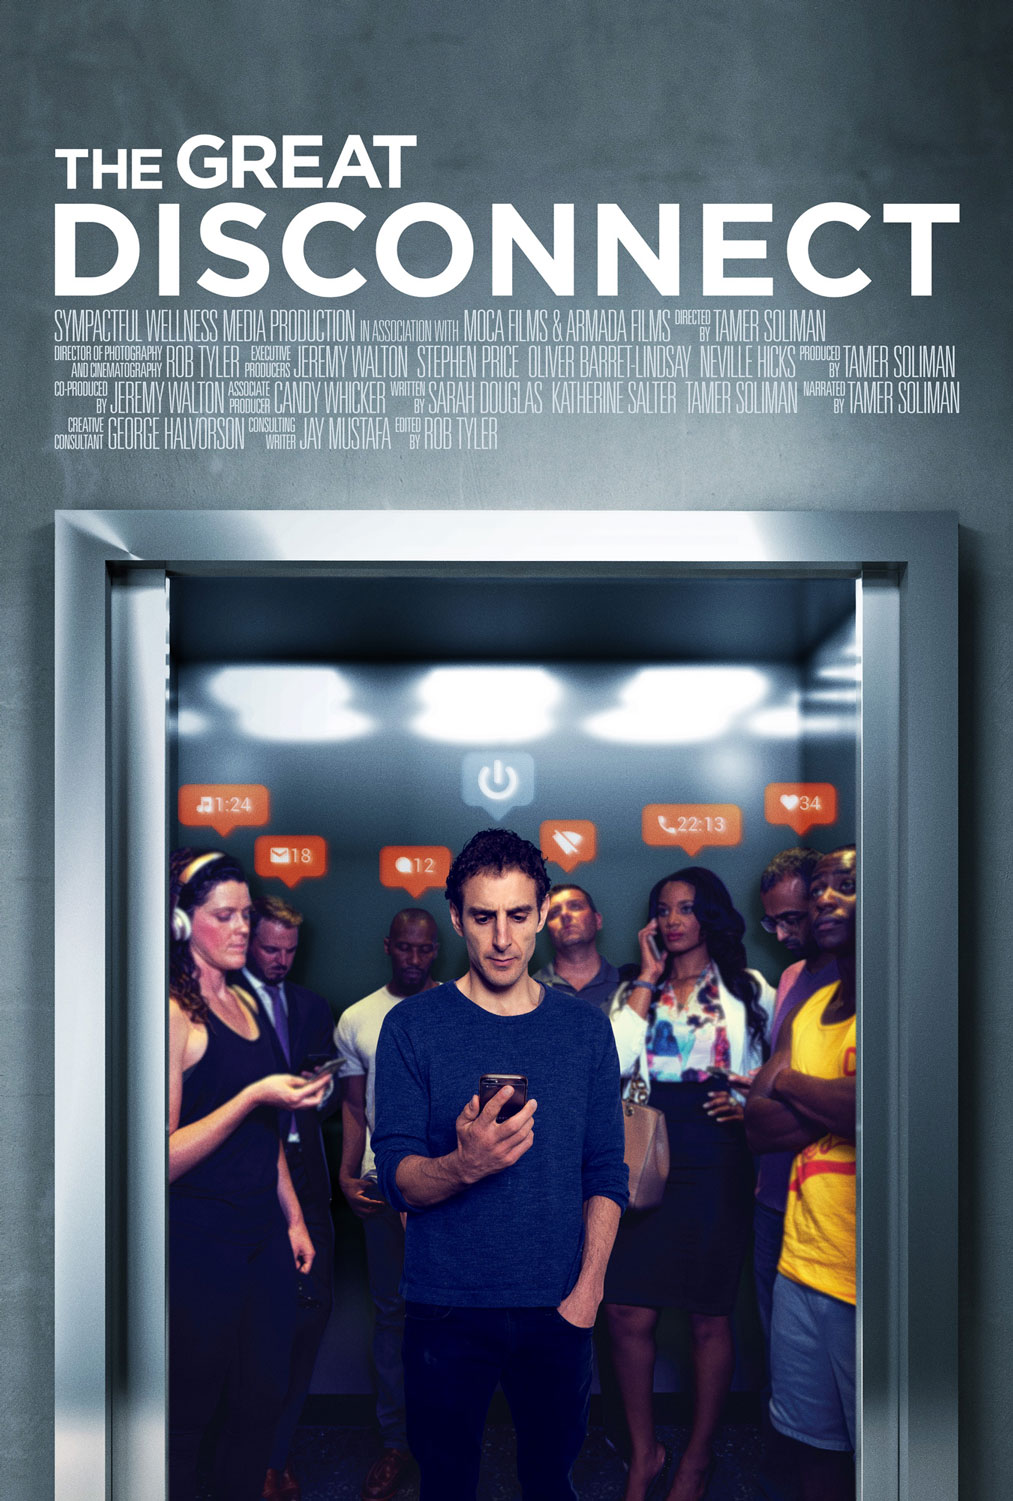 The Great Disconnect Movie Poster